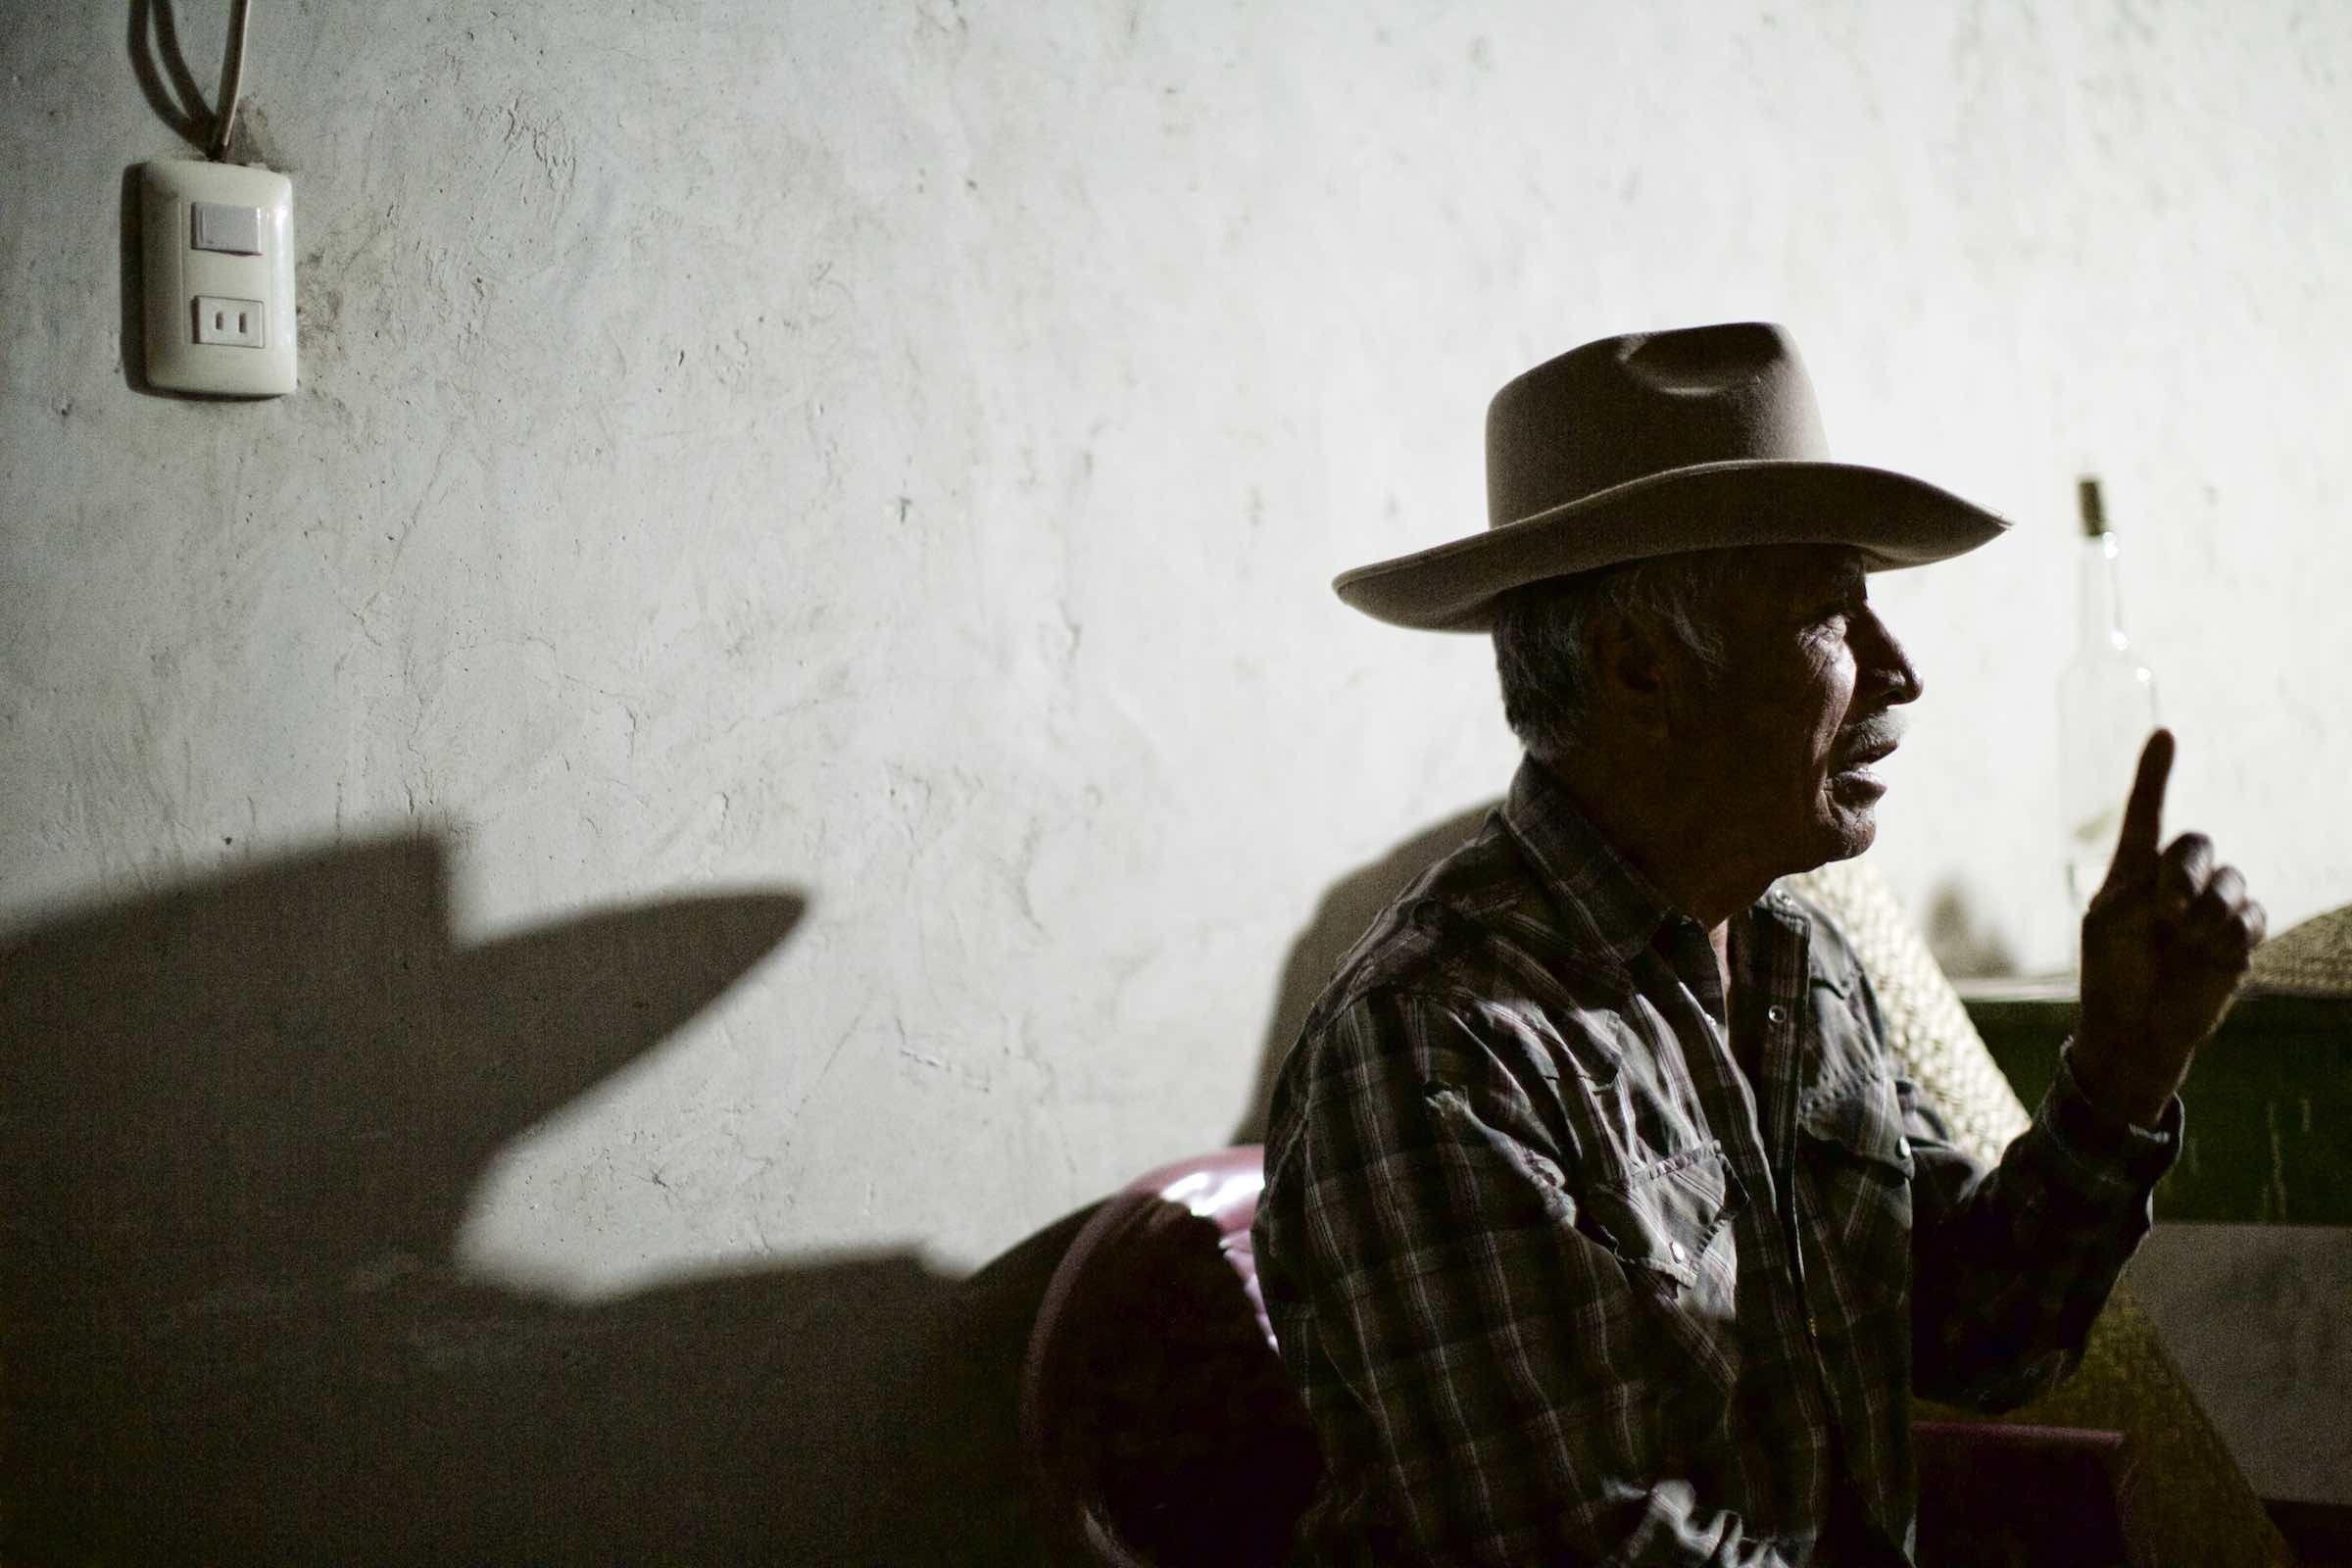 Jody Horton Photography - Agave farmer discussing his life